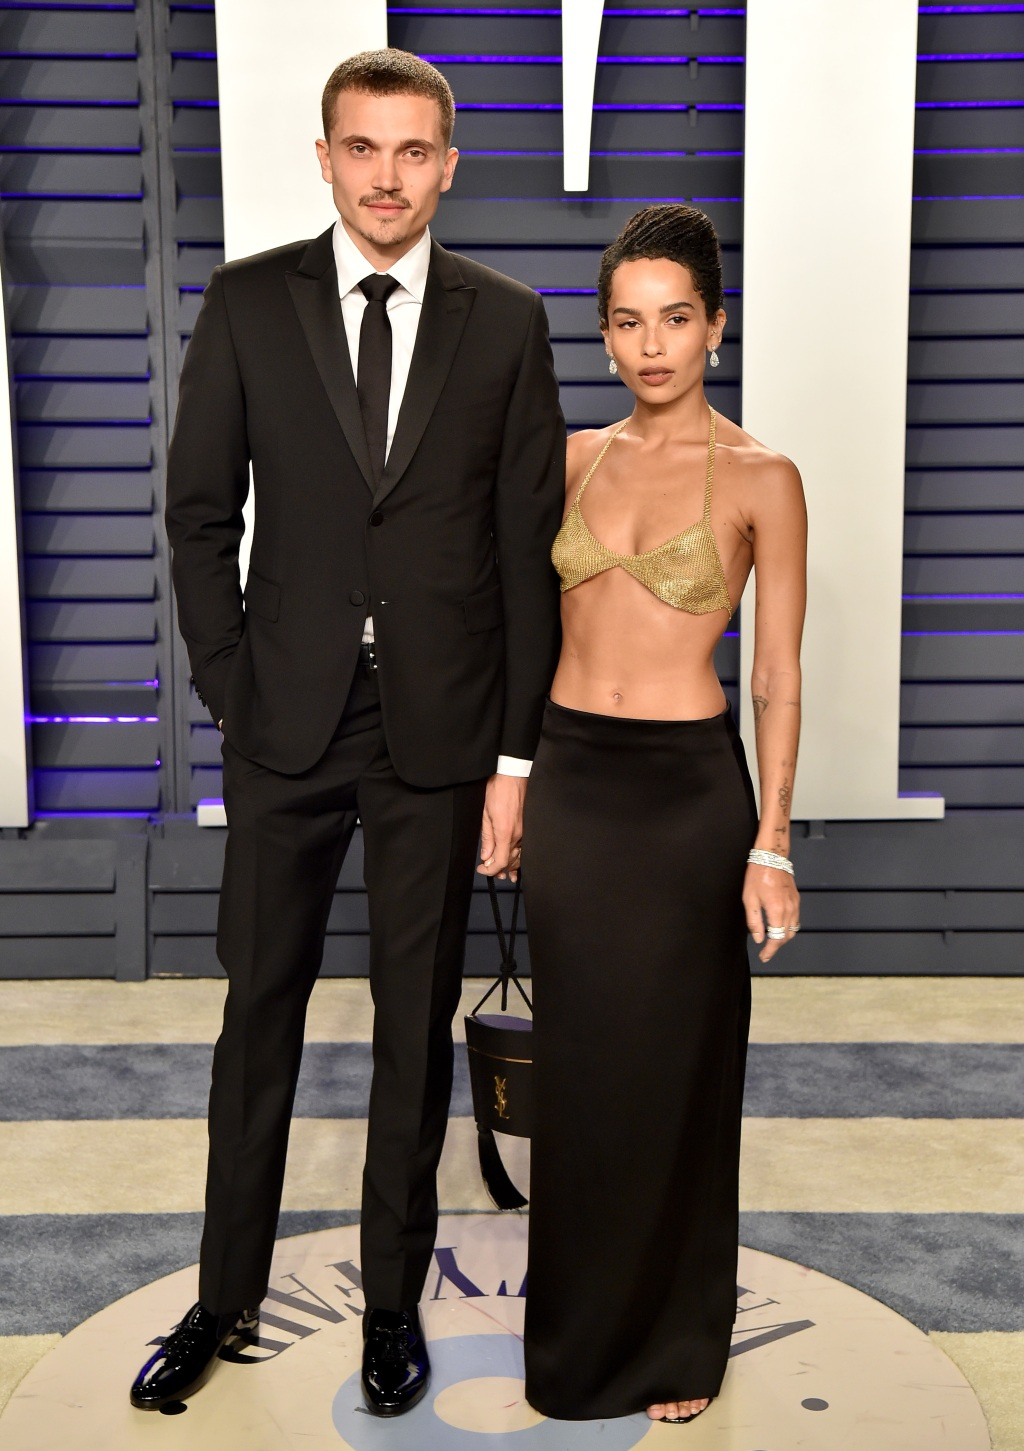 Zoe Kravitz Files For Divorce From Karl Glusman